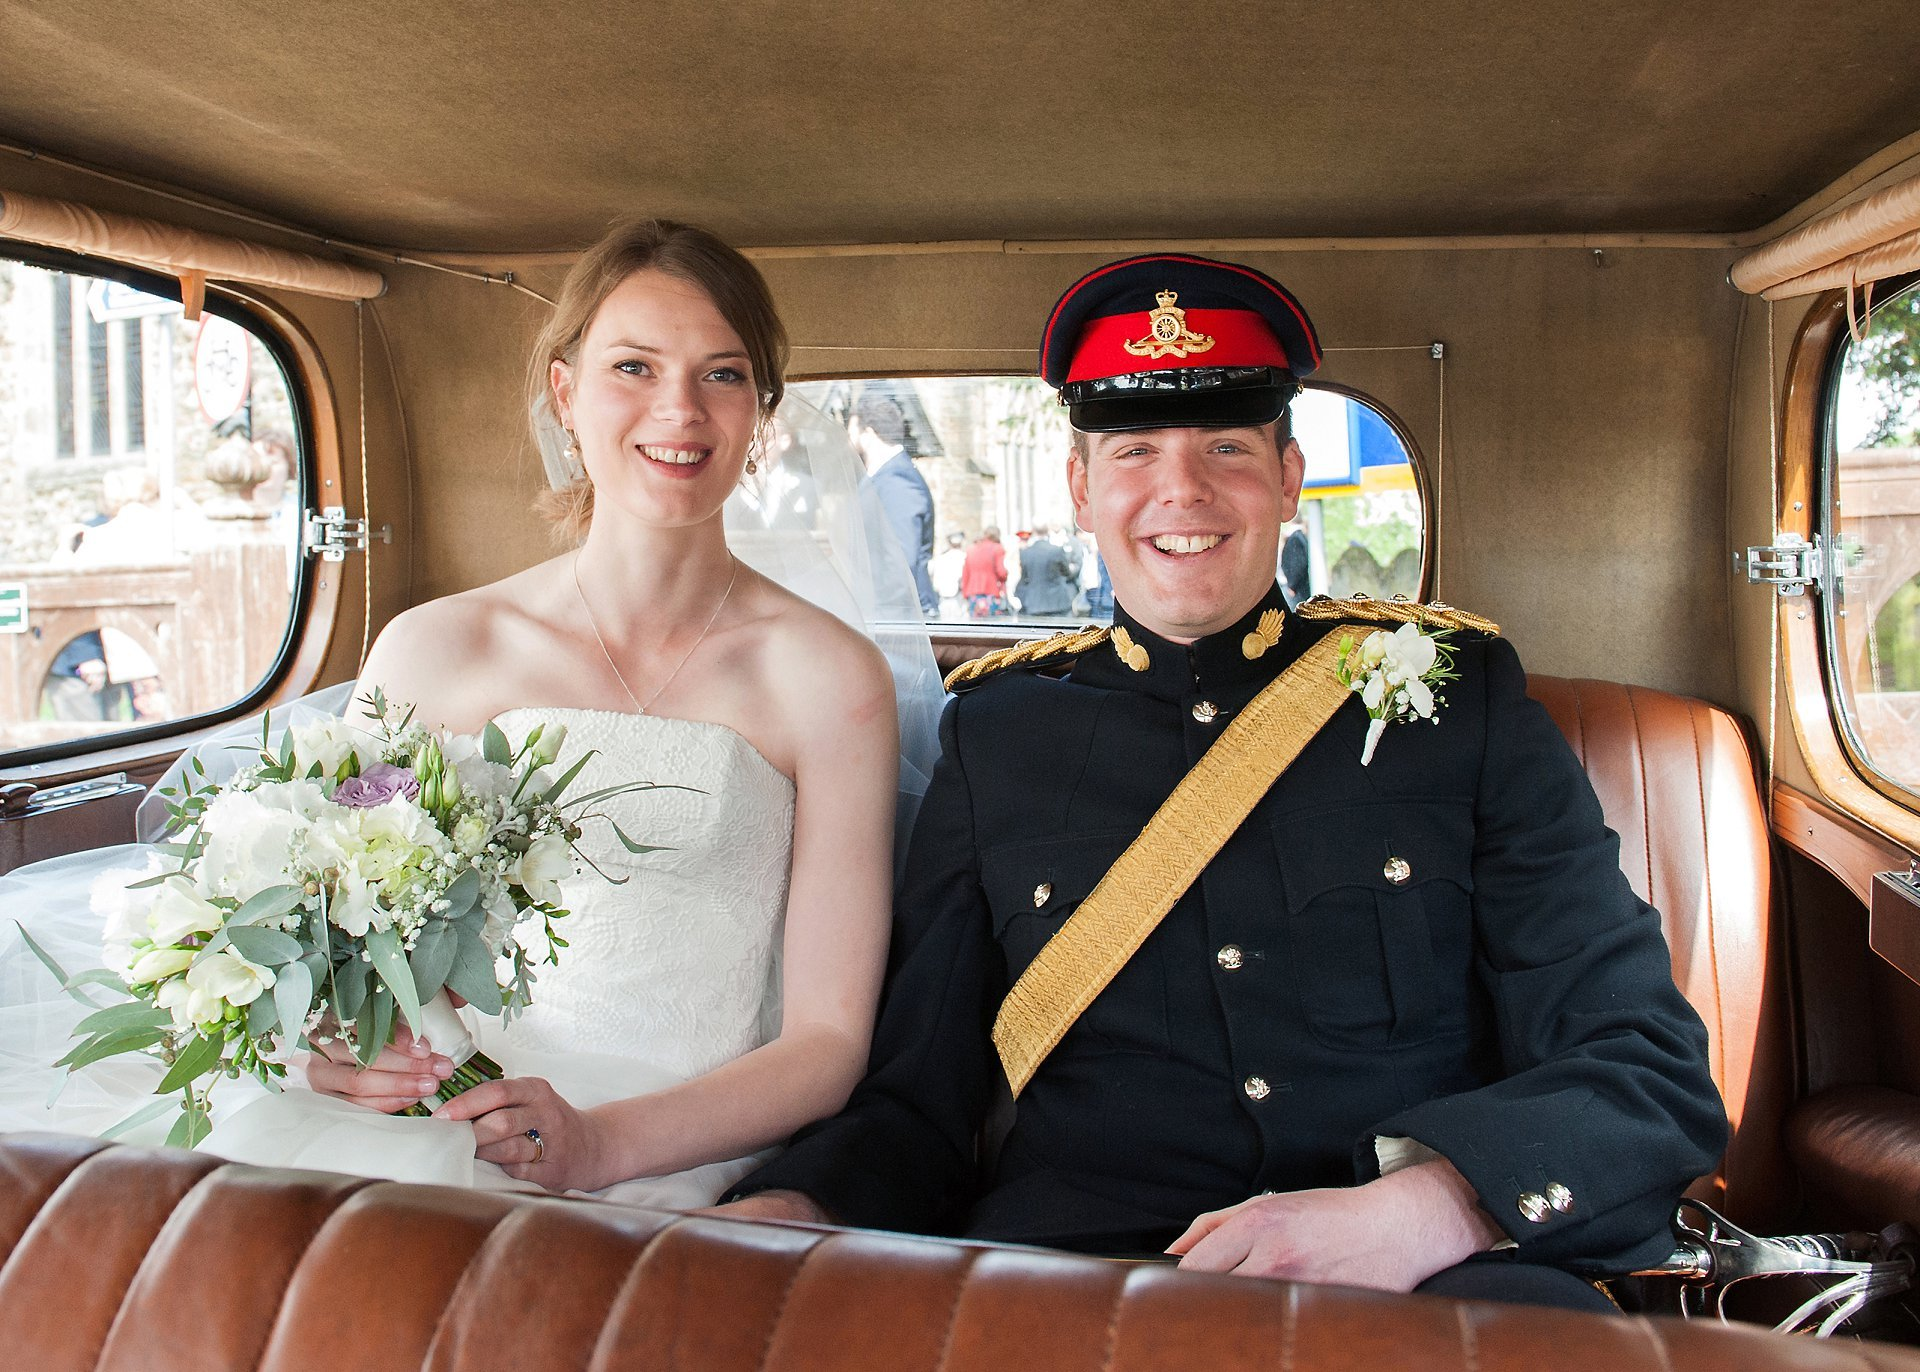 Starborough Manor Wedding Photographer - Bride and Groom inside the 1934 Wolseley County vintage car provided by Sovereign Chauffeur Services Crowborough